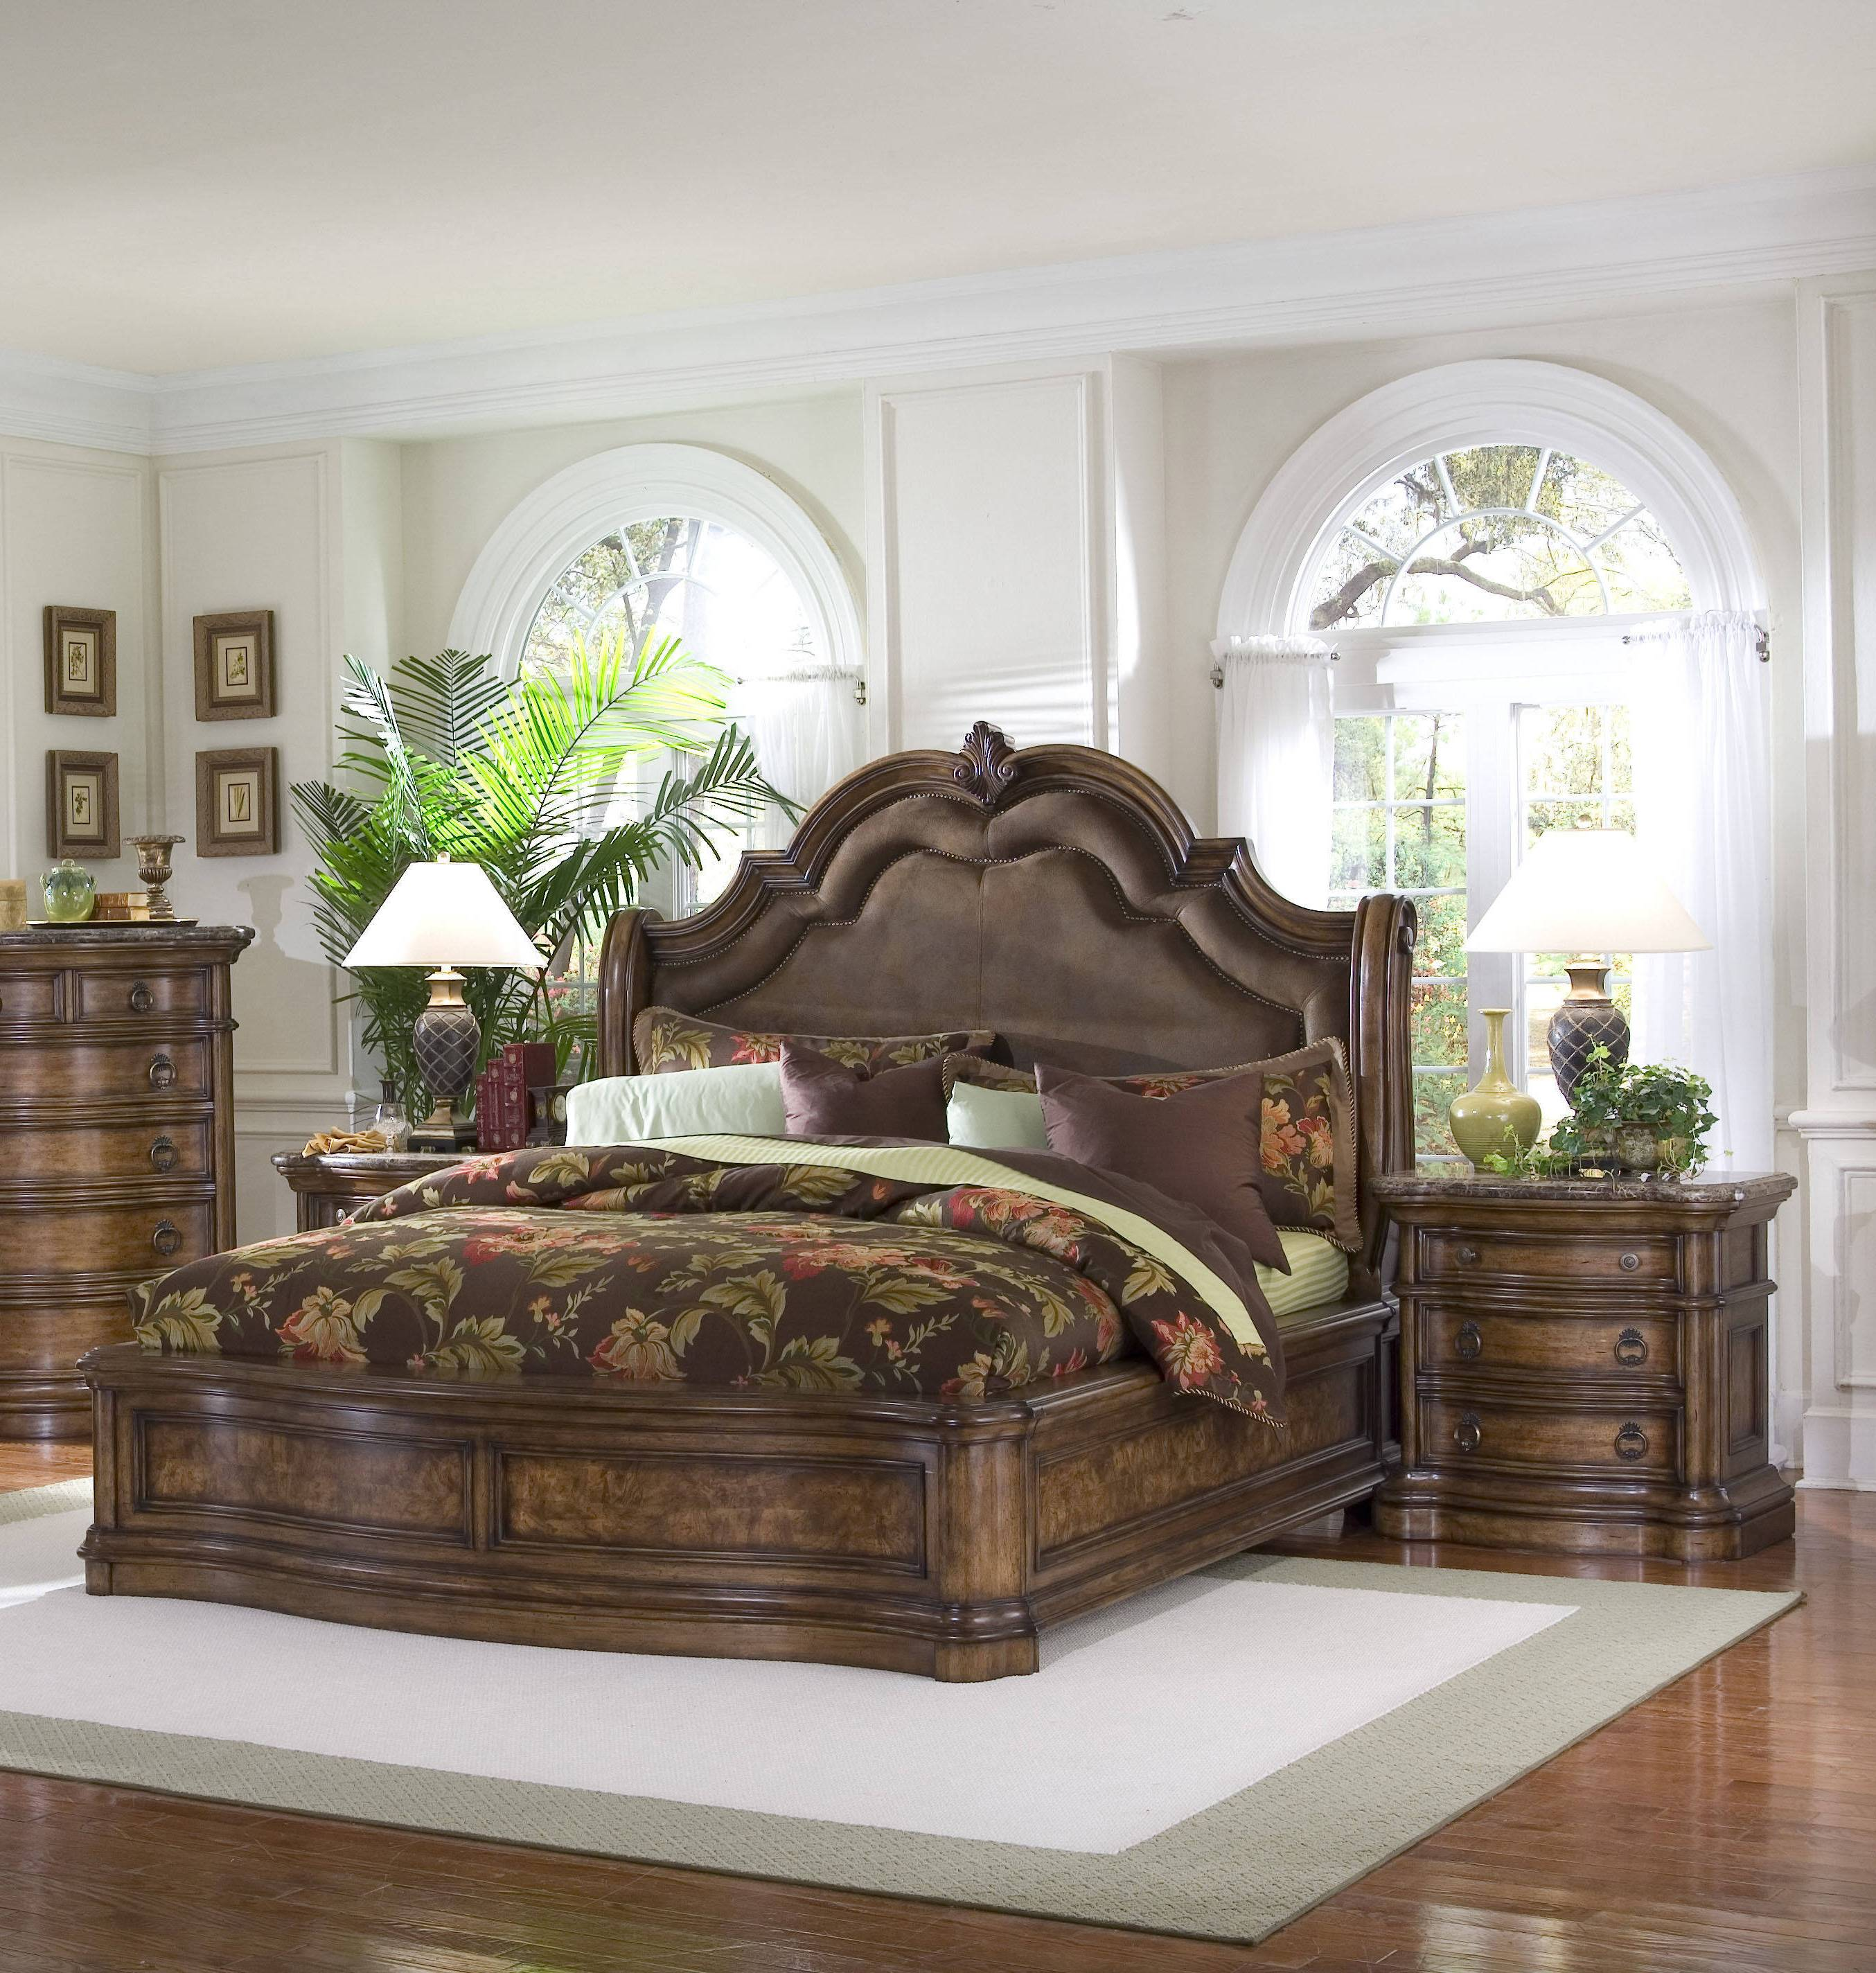 San Mateo Sleigh Bedroom Set From Pulaski 662170 662171